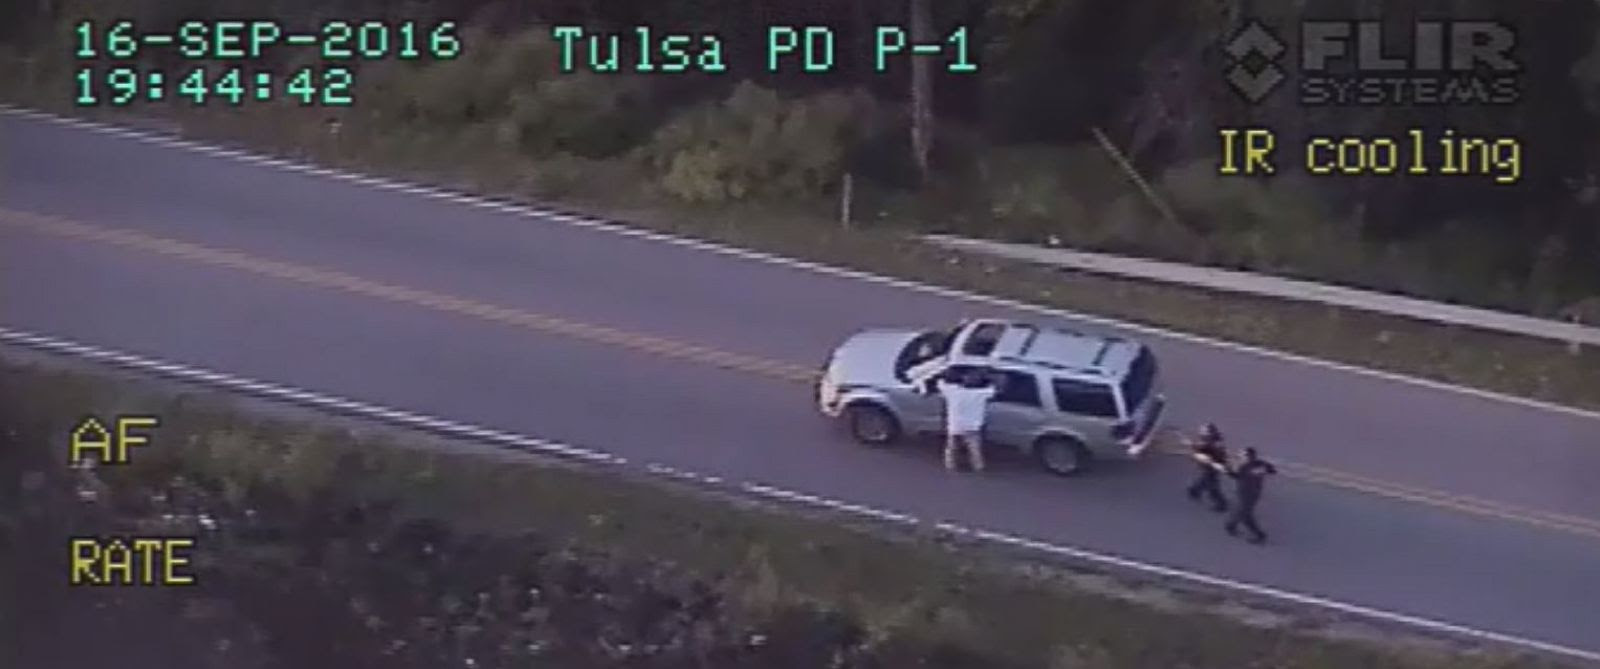 Dashcam video shows unarmed man killed by Oklahoma police. (Credit: Tulsa Police Department)